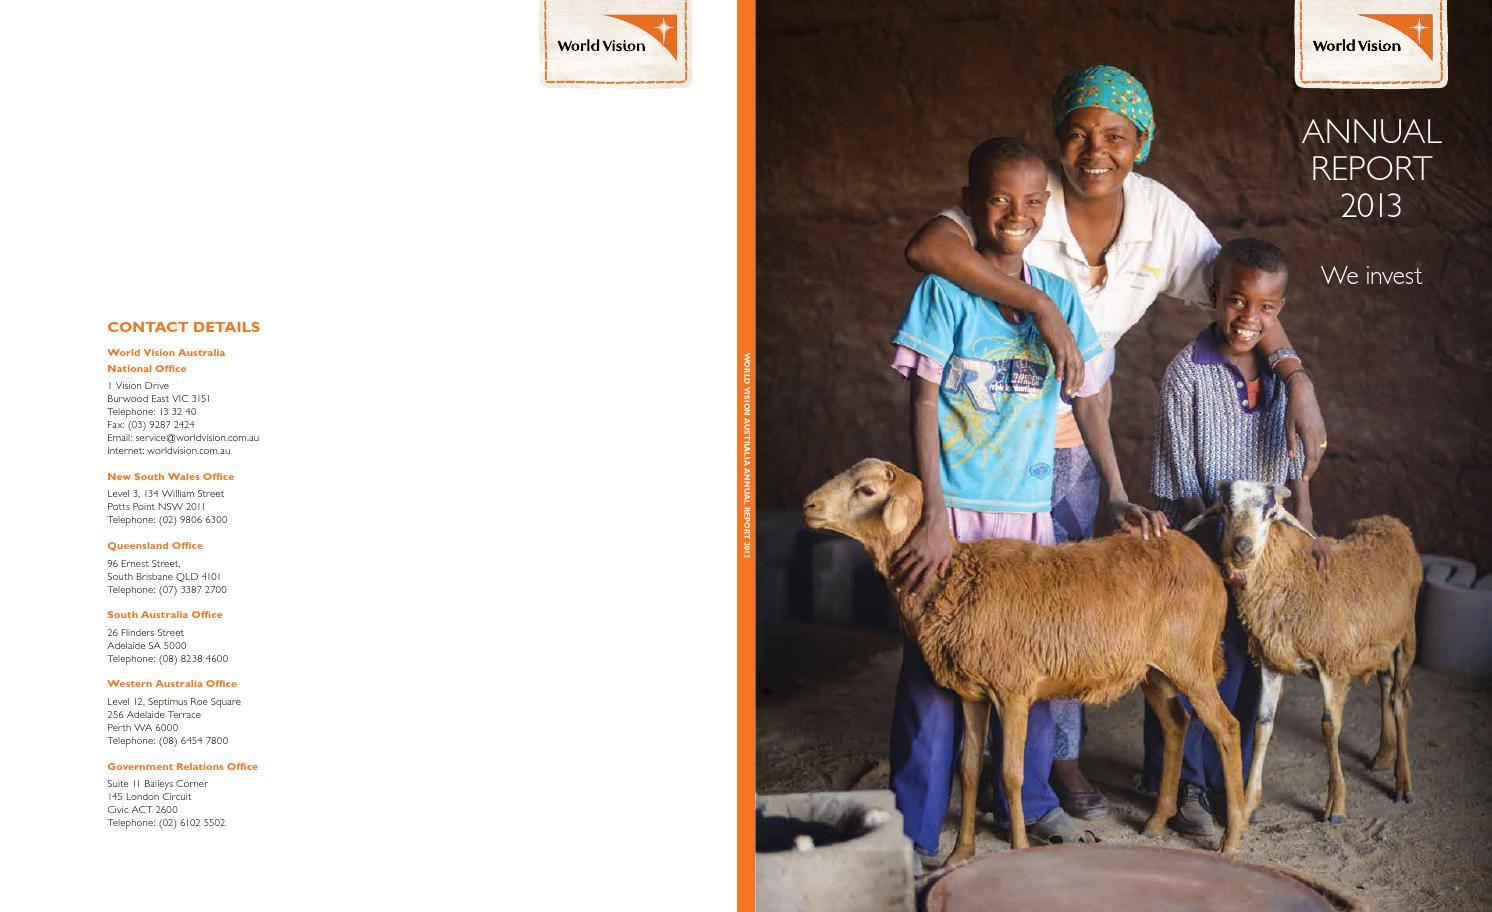 World vision annual report 2013 by world vision australia for 145 south terrace adelaide